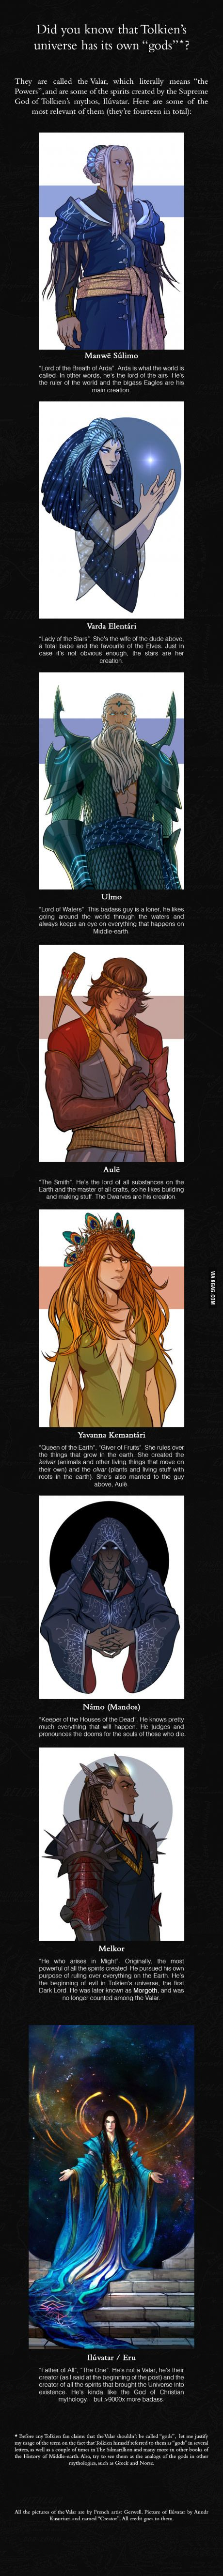 Let me introduce you to The Valar (From J.R.R. Tolkien Mythos)